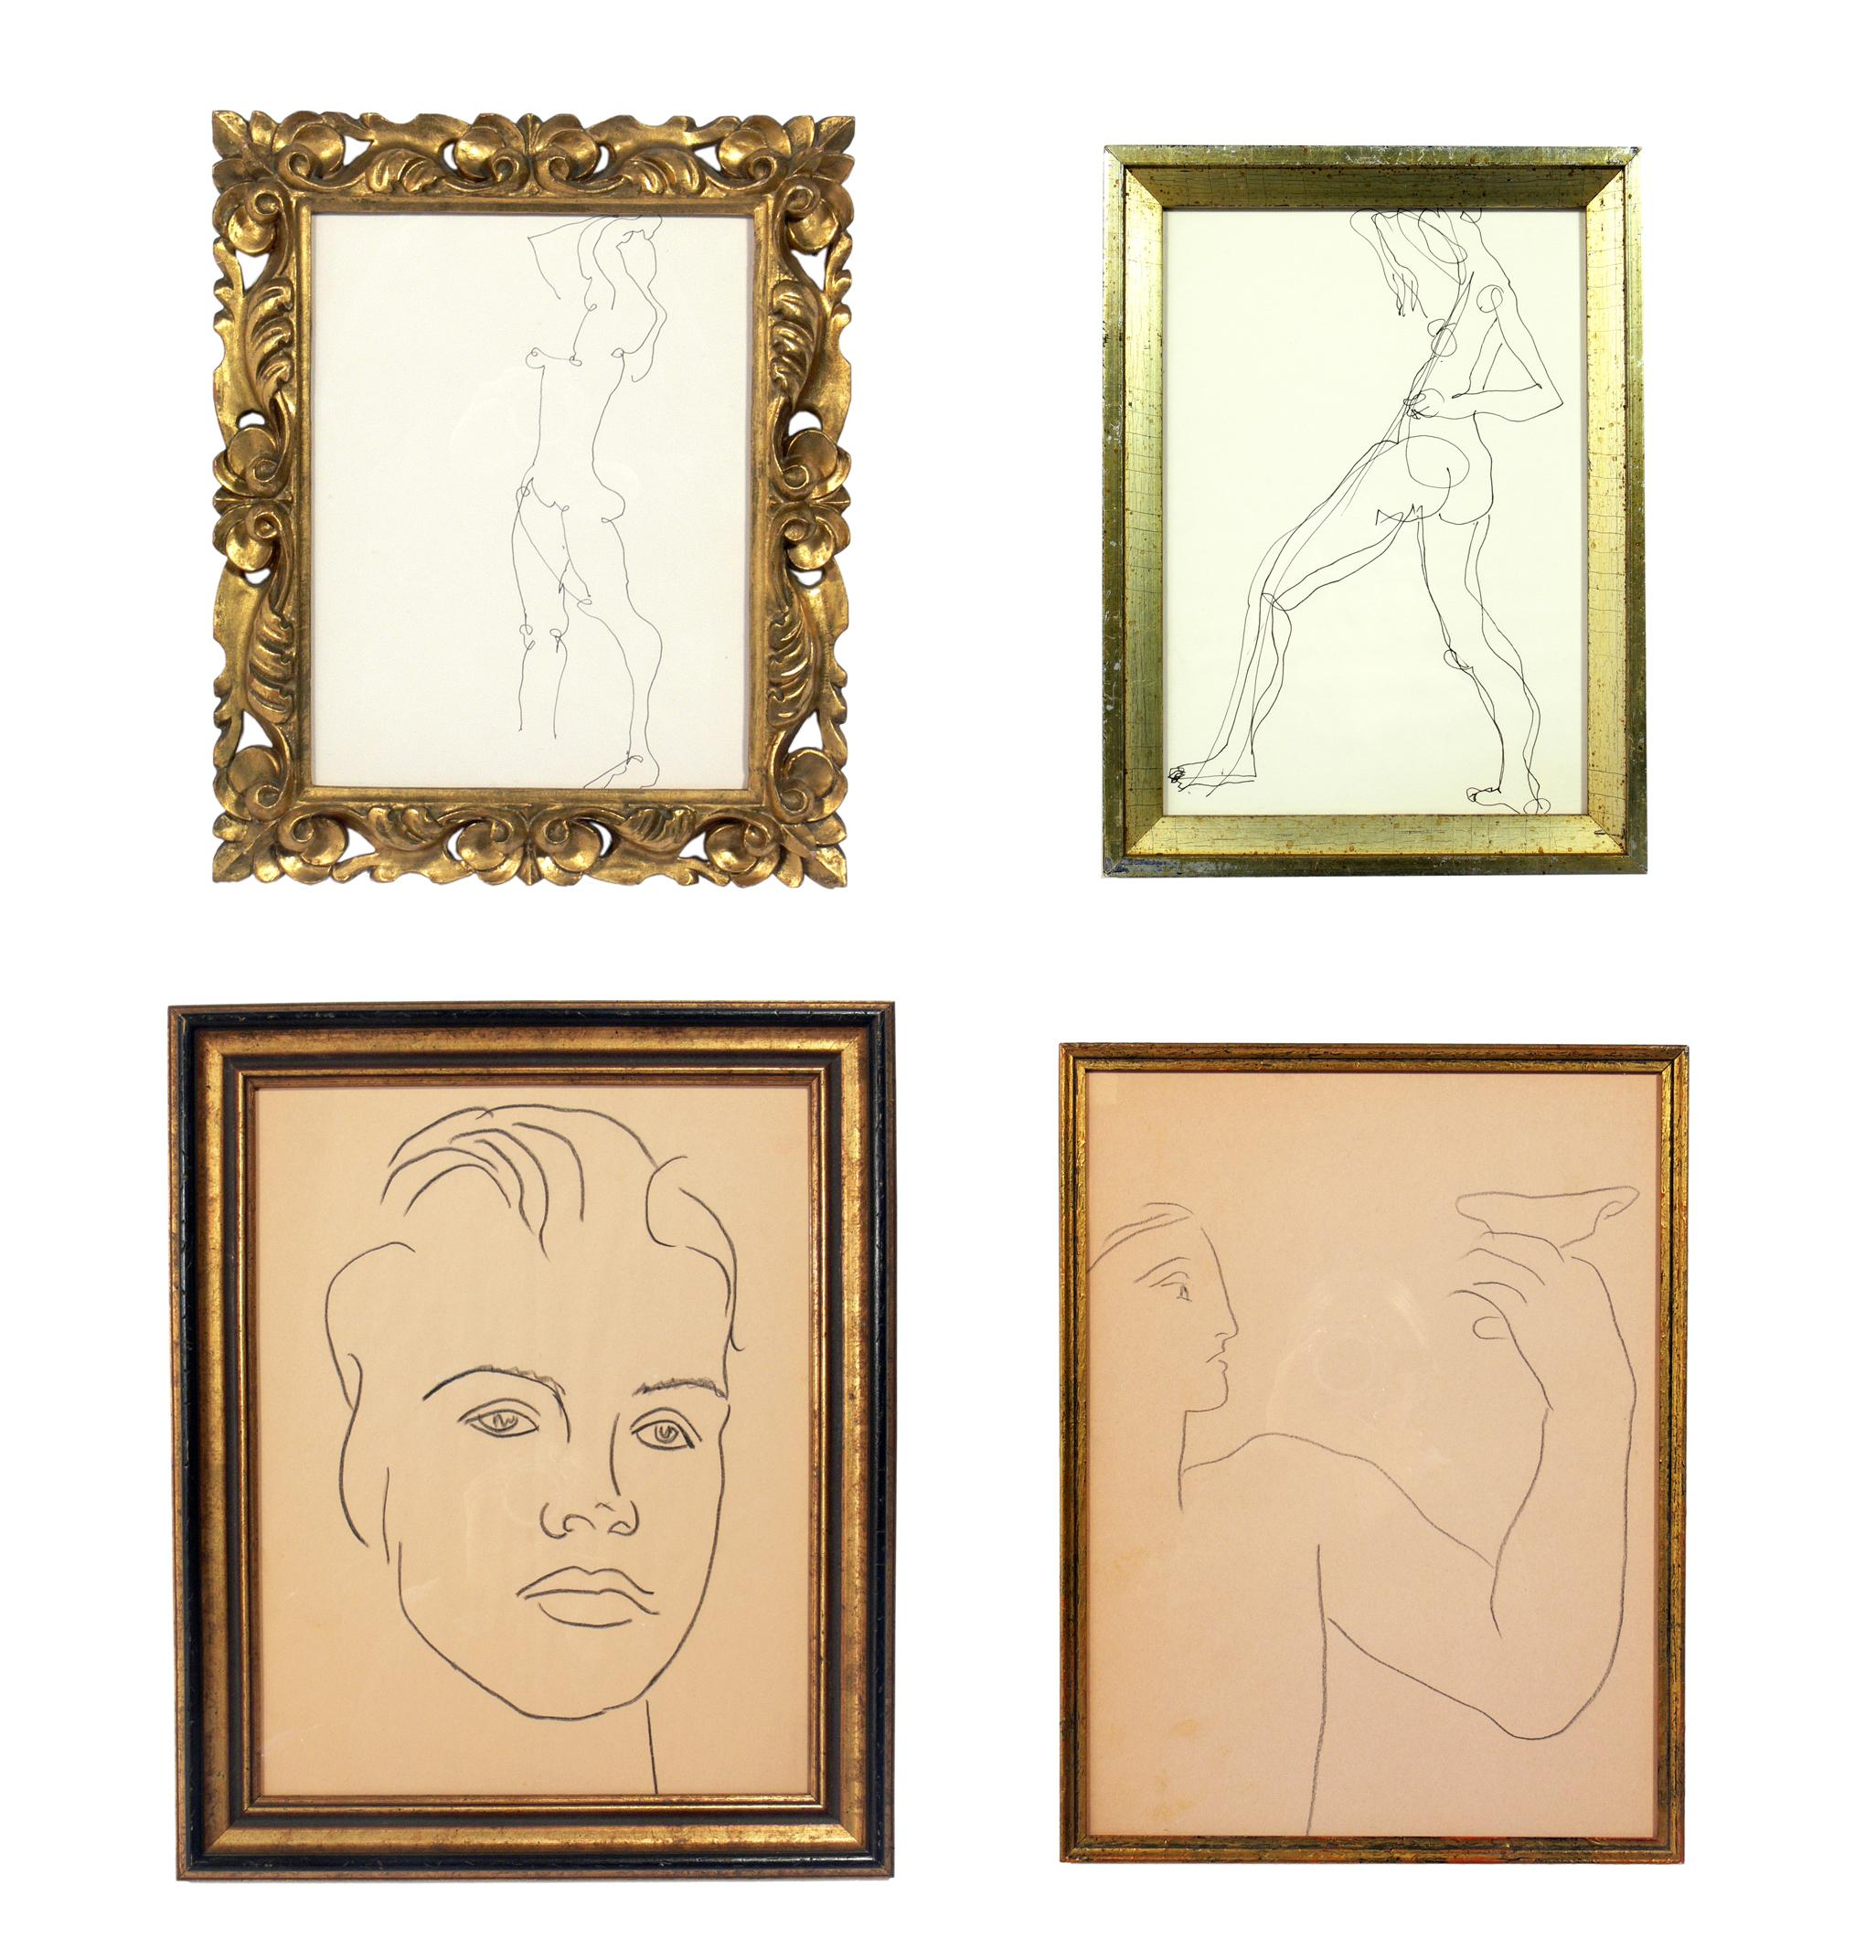 Selection of Figural Drawings in Vintage Gilt Frames